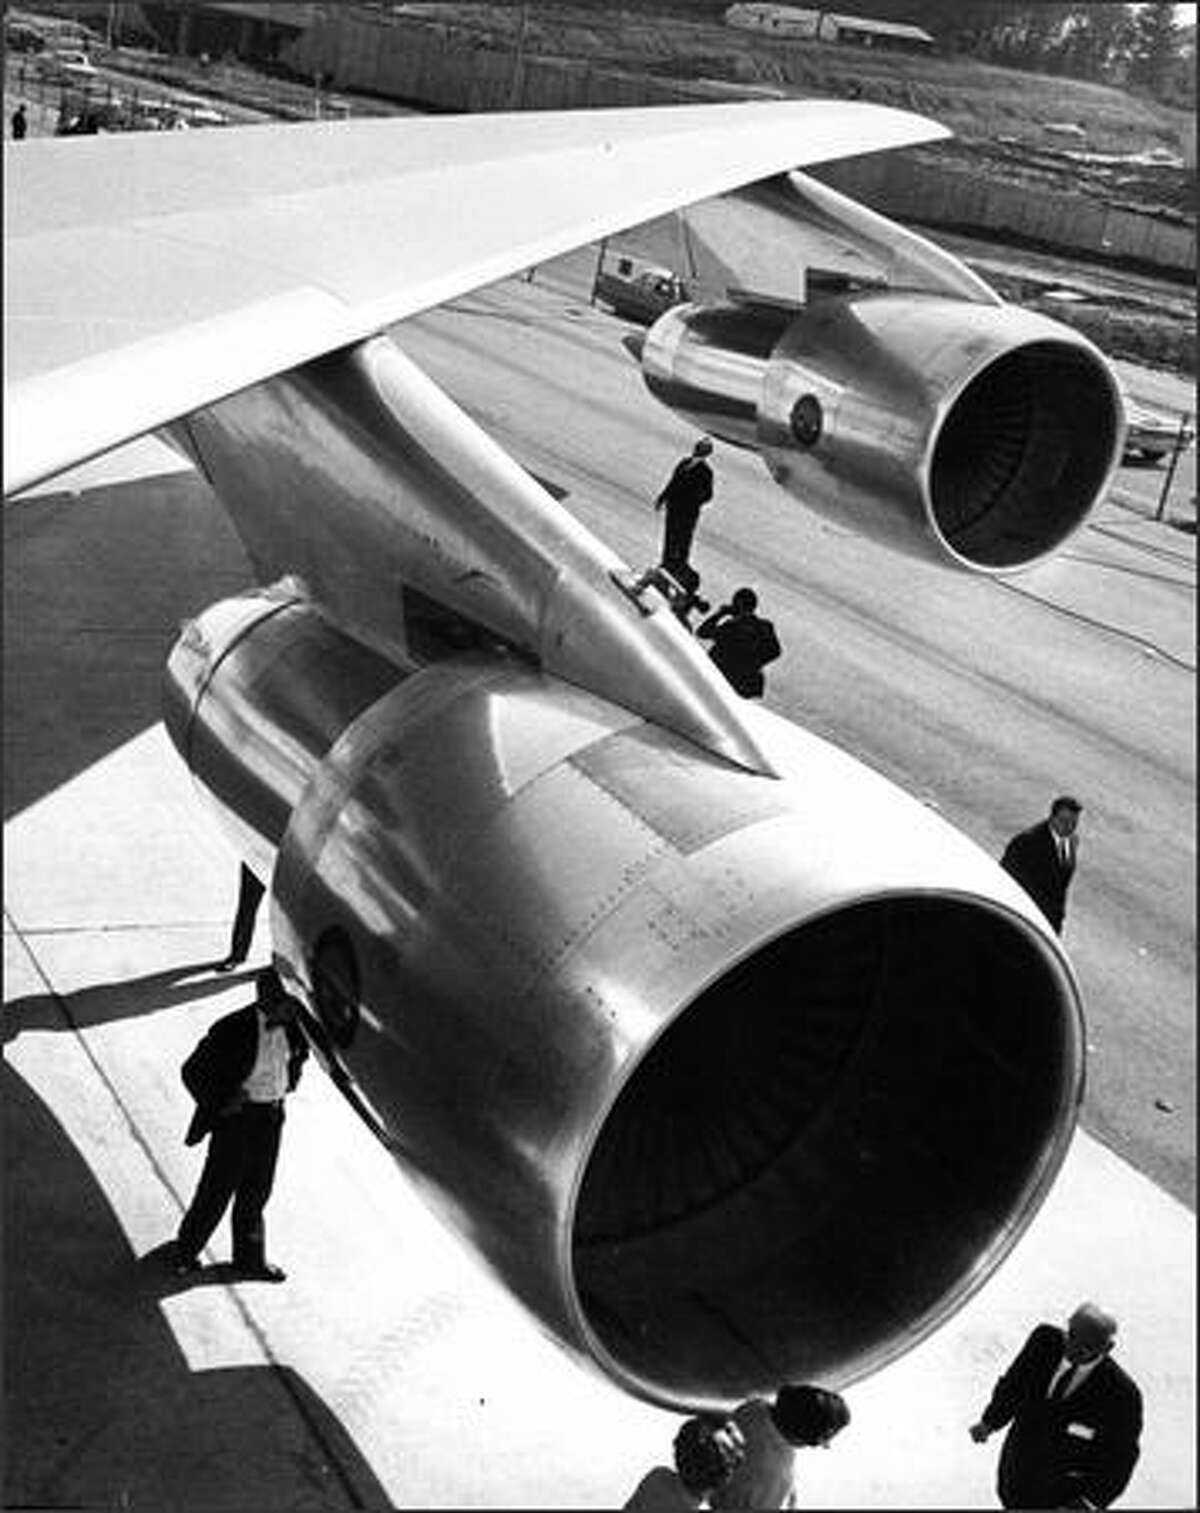 The wing of the first Boeing 747 is shown with onlookers underneath at the Boeing Everett plant on Sept. 30, 1968.